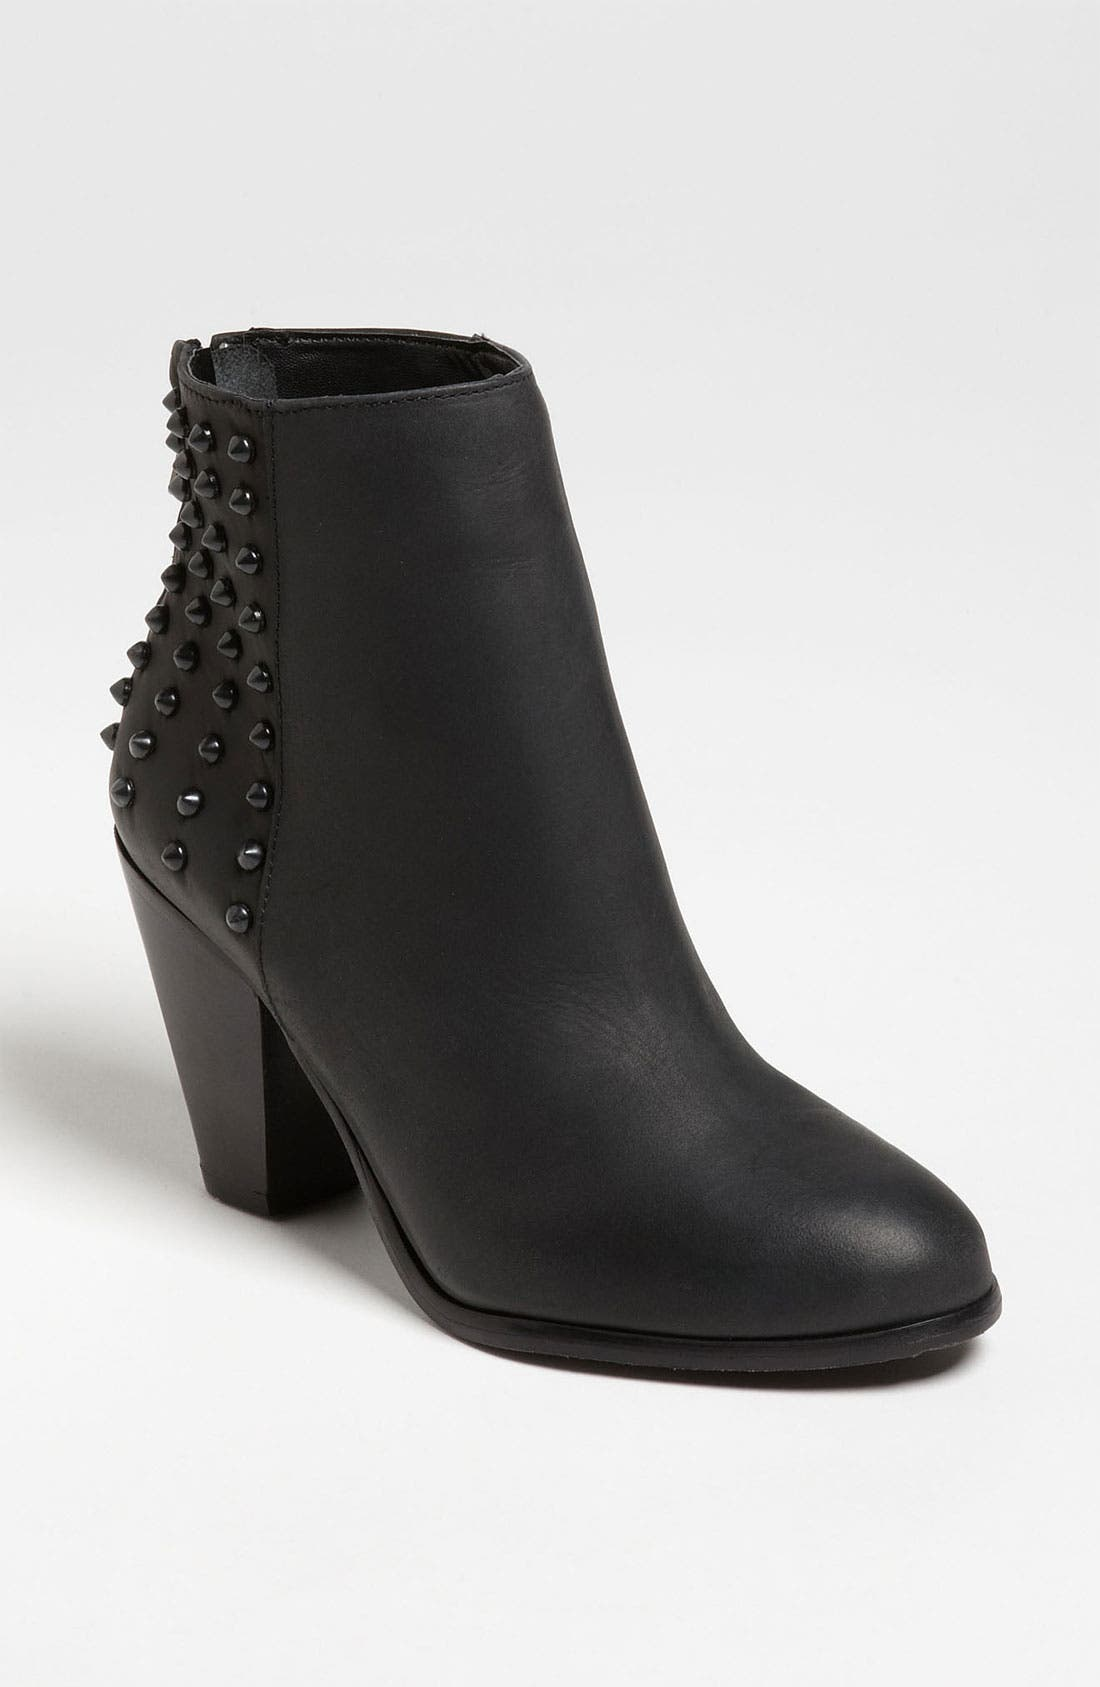 Alternate Image 1 Selected - Steve Madden 'Acedd' Bootie